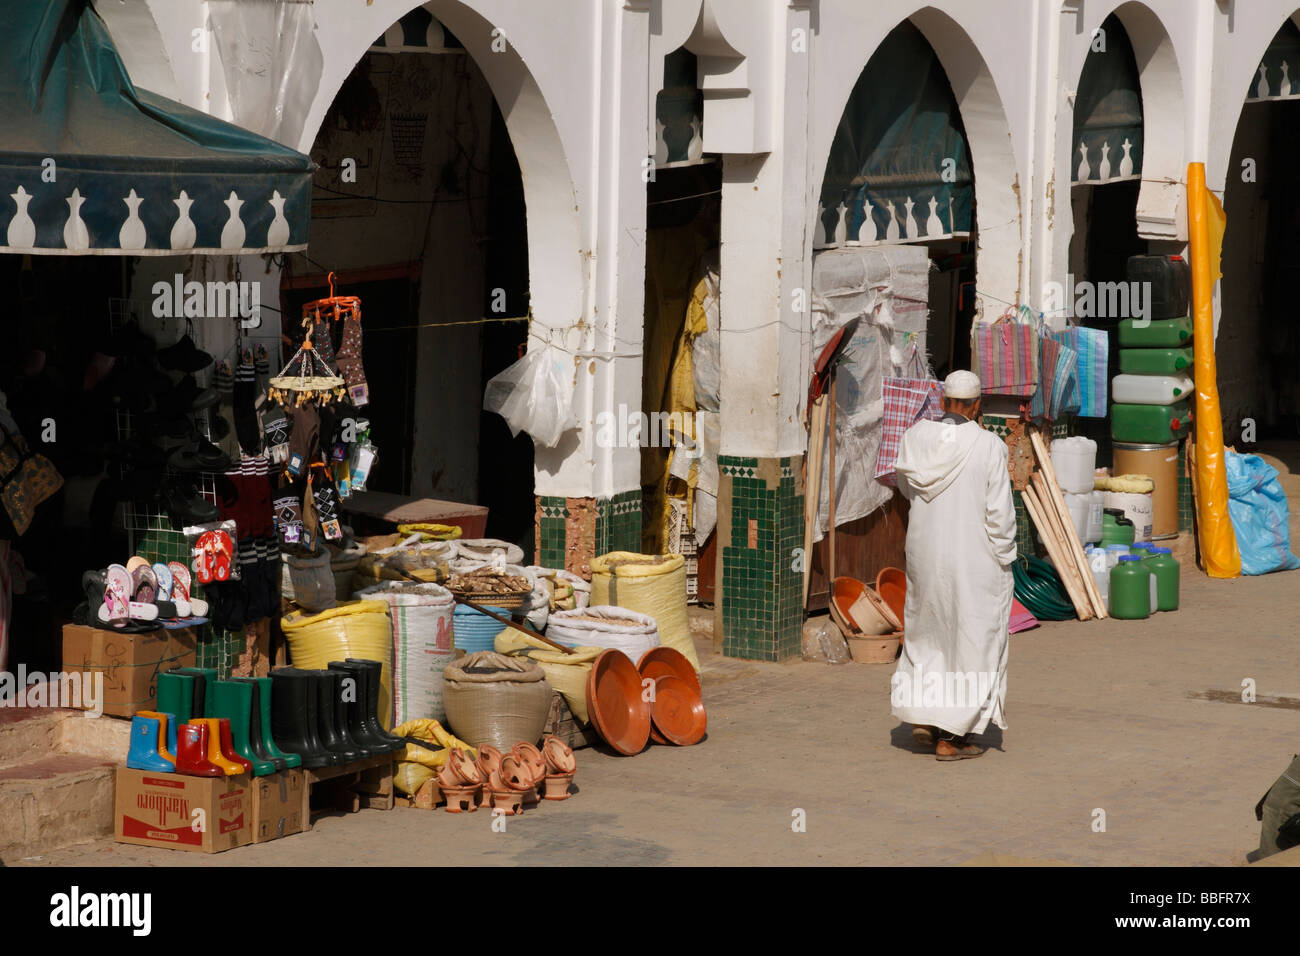 Africa, North Africa, Morocco, Moulay Idriss, Town Square, Shop Fronts - Stock Image